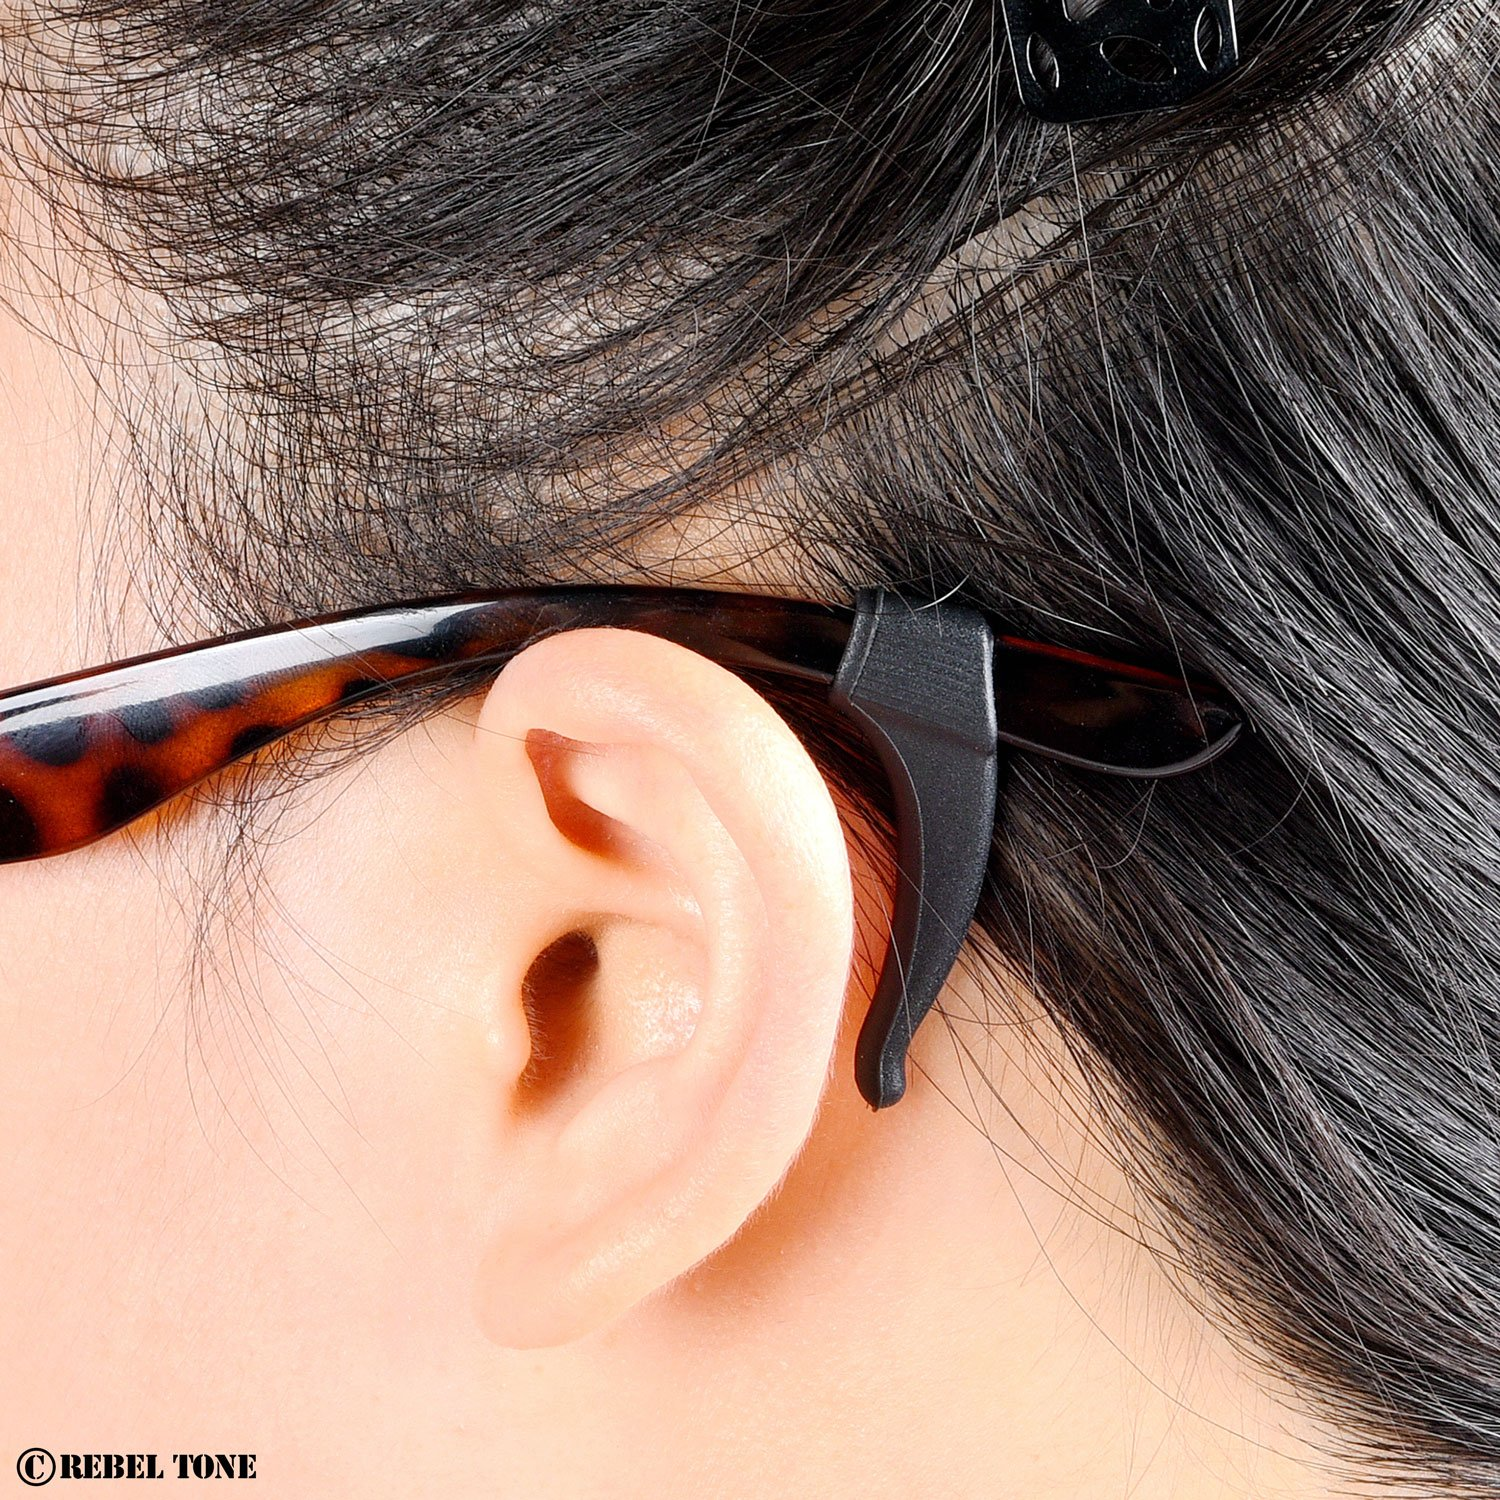 2x Brown with Diamond Shield Cloth and Pack Rebel Tone 2x black Prevents Your Glasses from Slipping Off 8 Pair 2x transparent white 1x Orange Perfect Fit 1x yellow Eyeglass Ear Grip Hooks